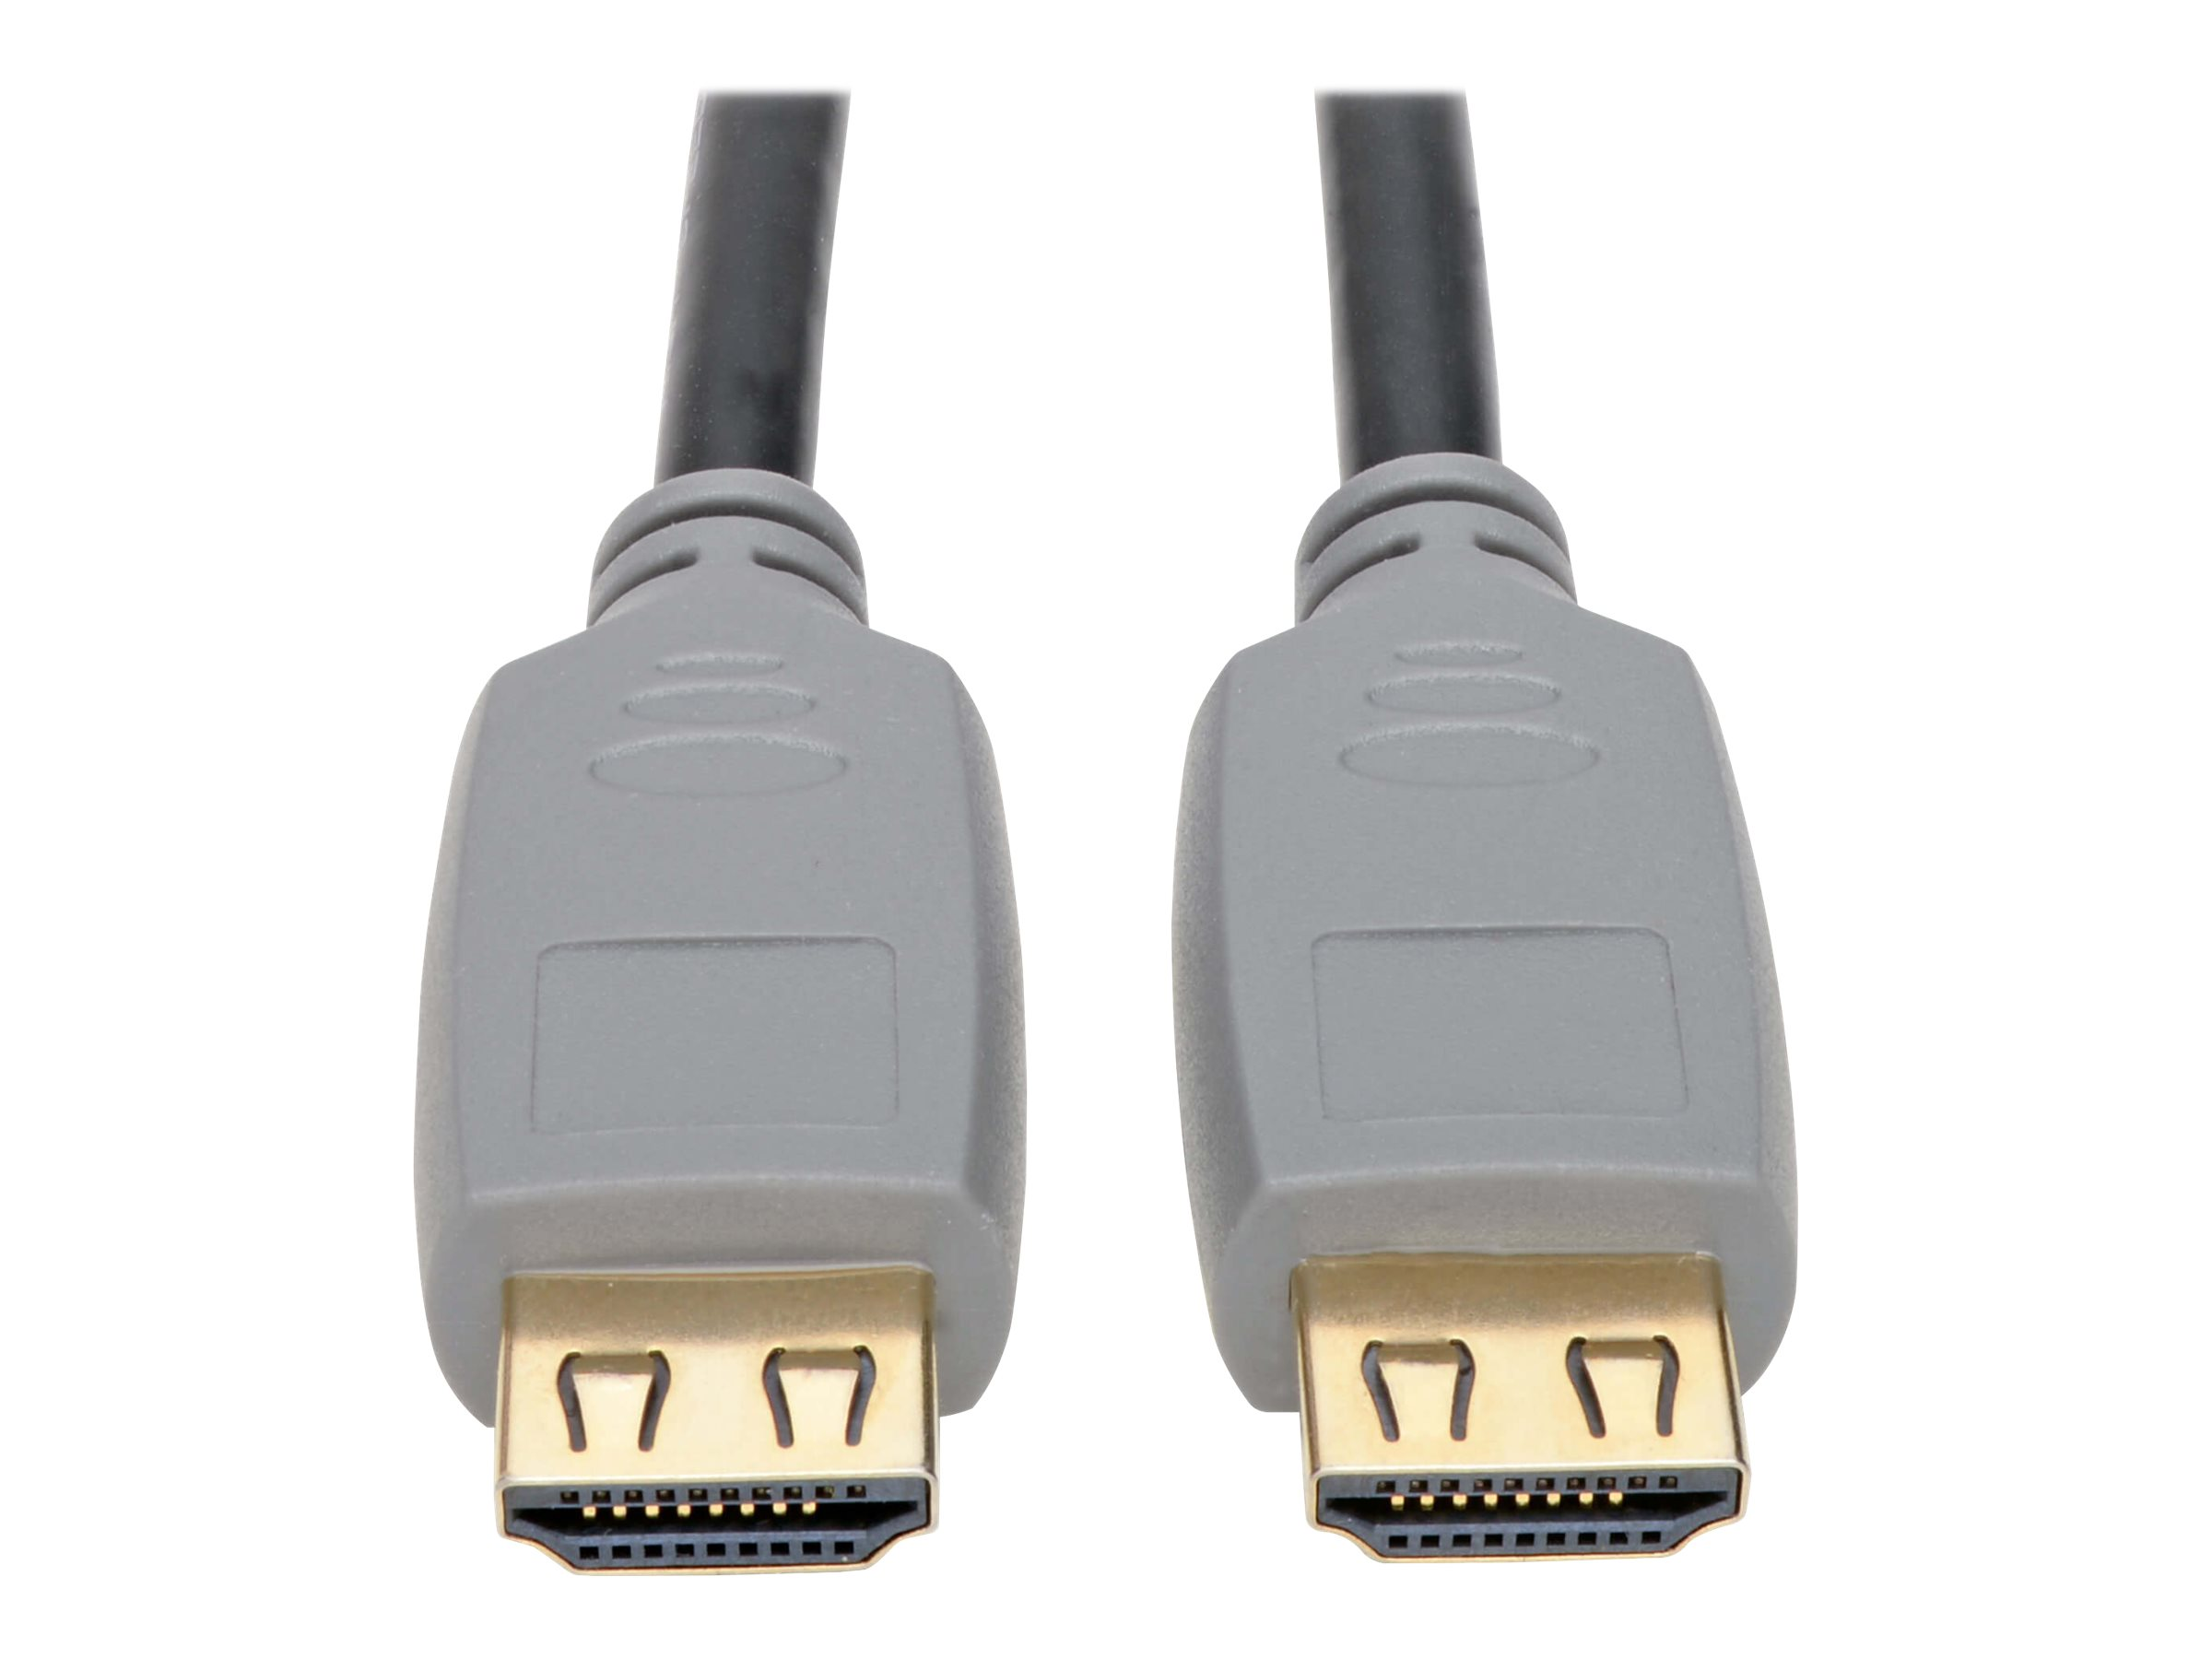 Tripp Lite High-Speed HDMI Cable with Gripping Connectors 4K 60 Hz 4:4:4 M/M Black 15ft - HDMI cable - 4.57 m